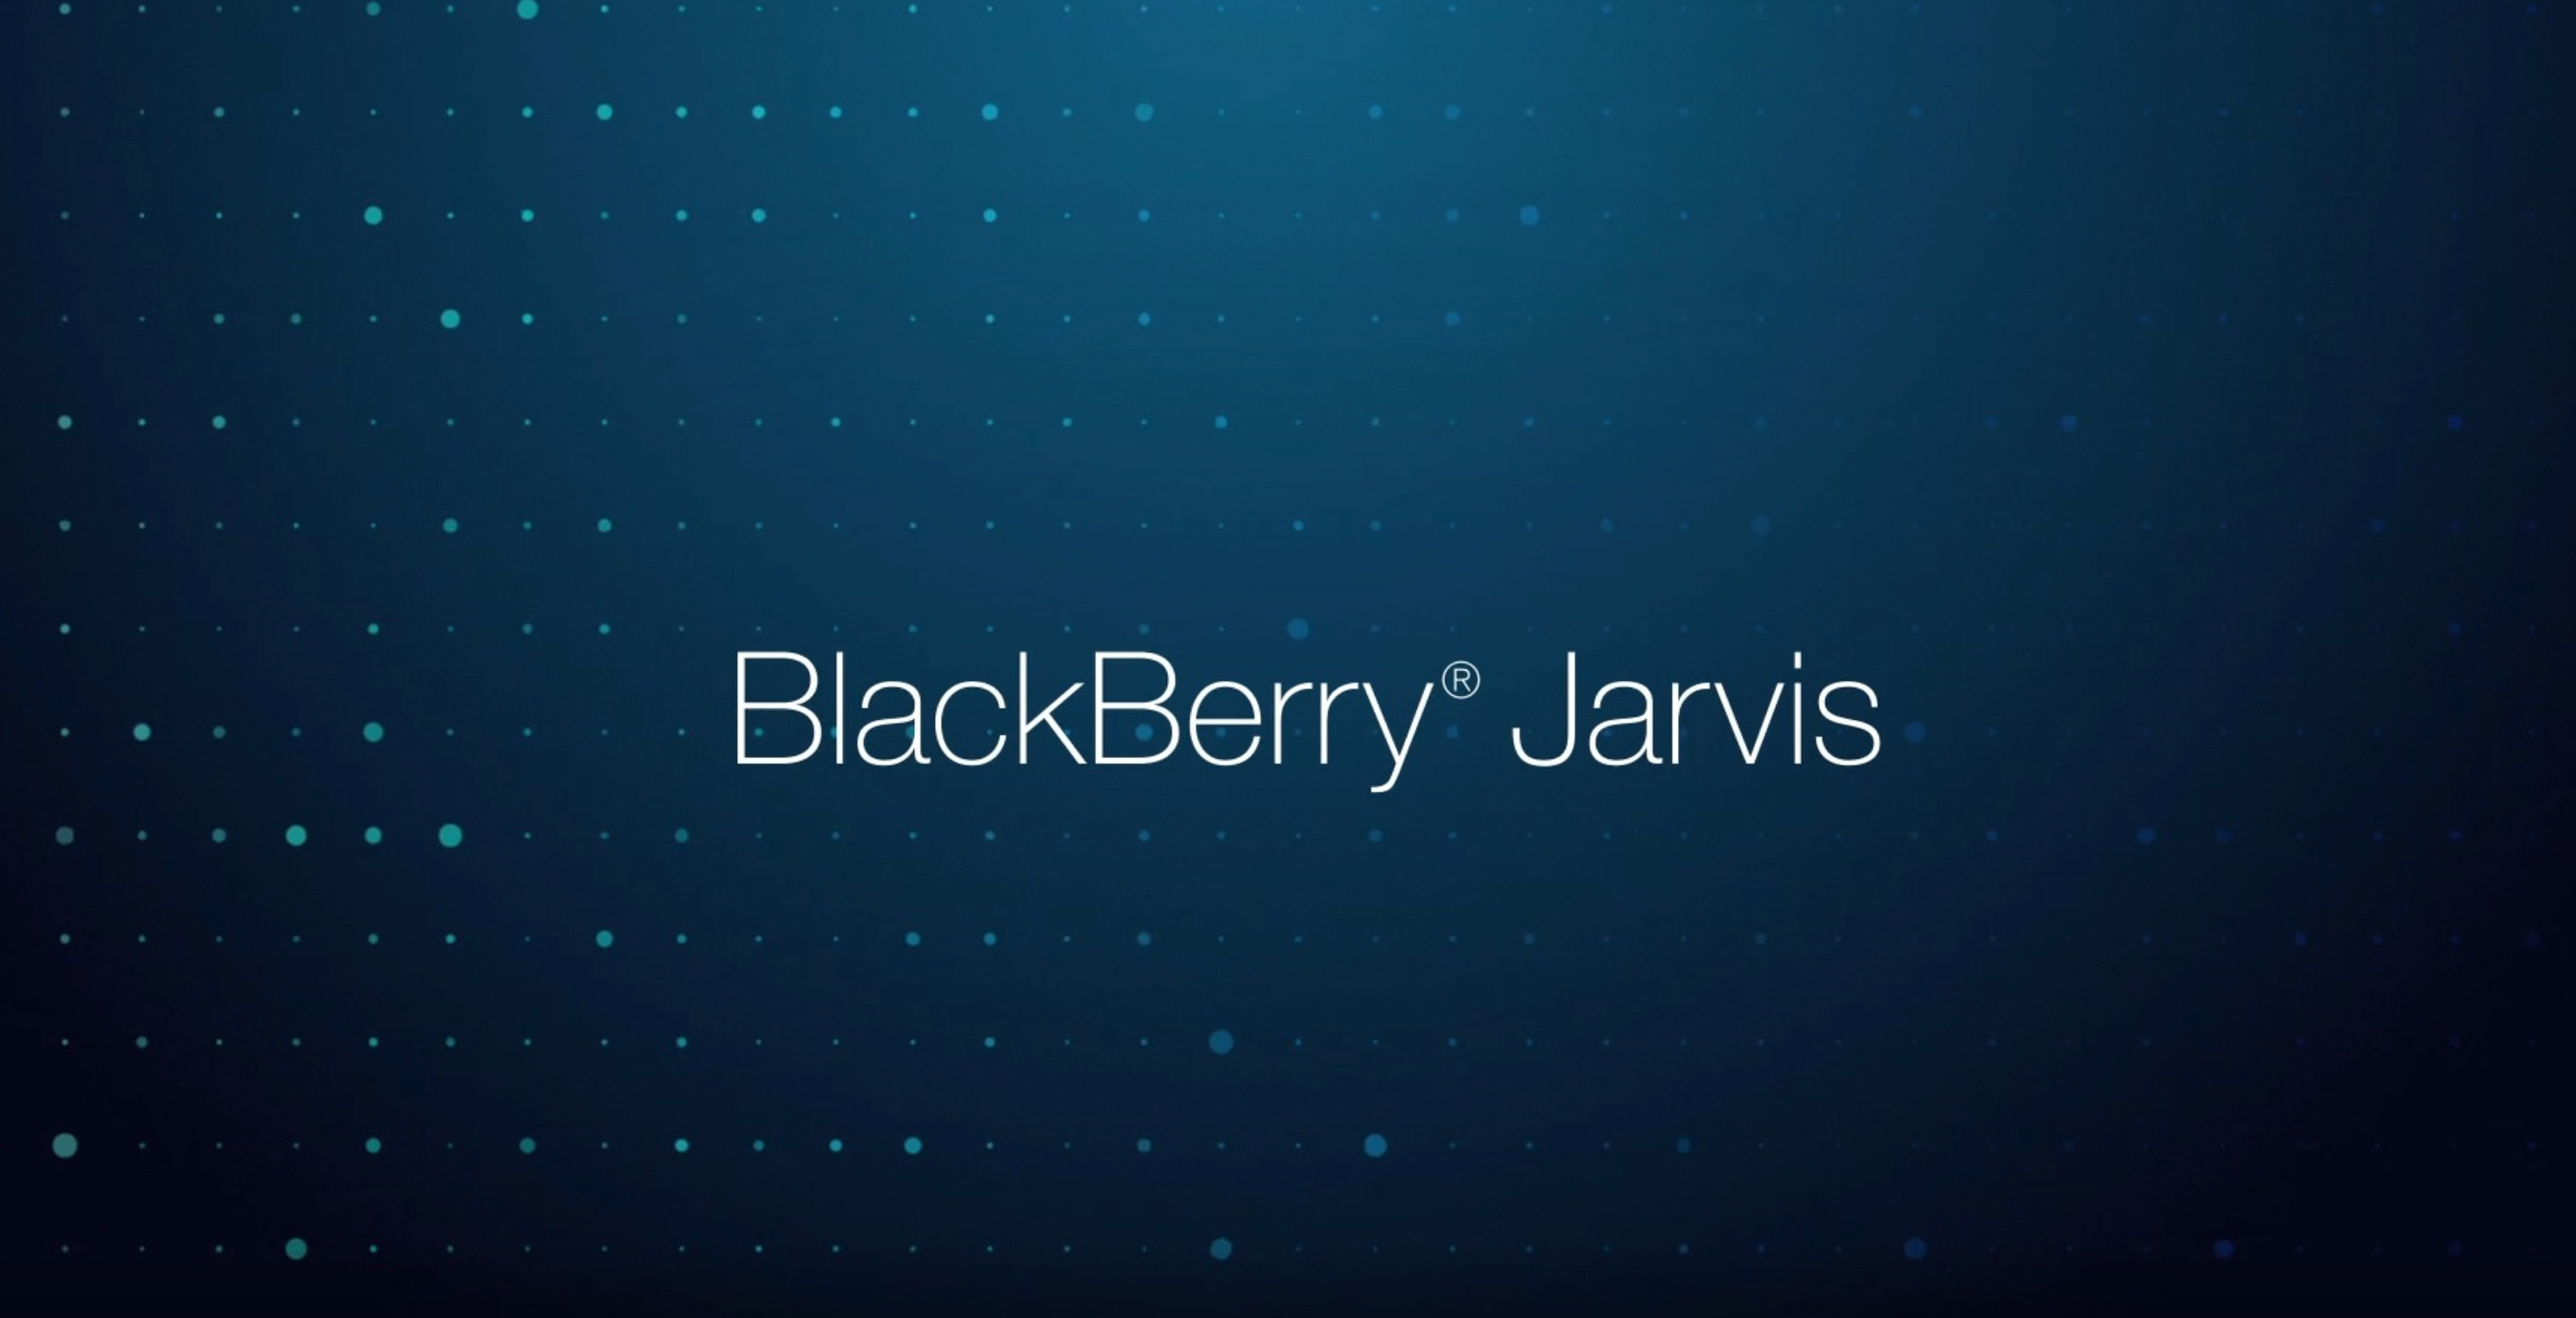 Jarvis is BlackBerry's new automotive security software